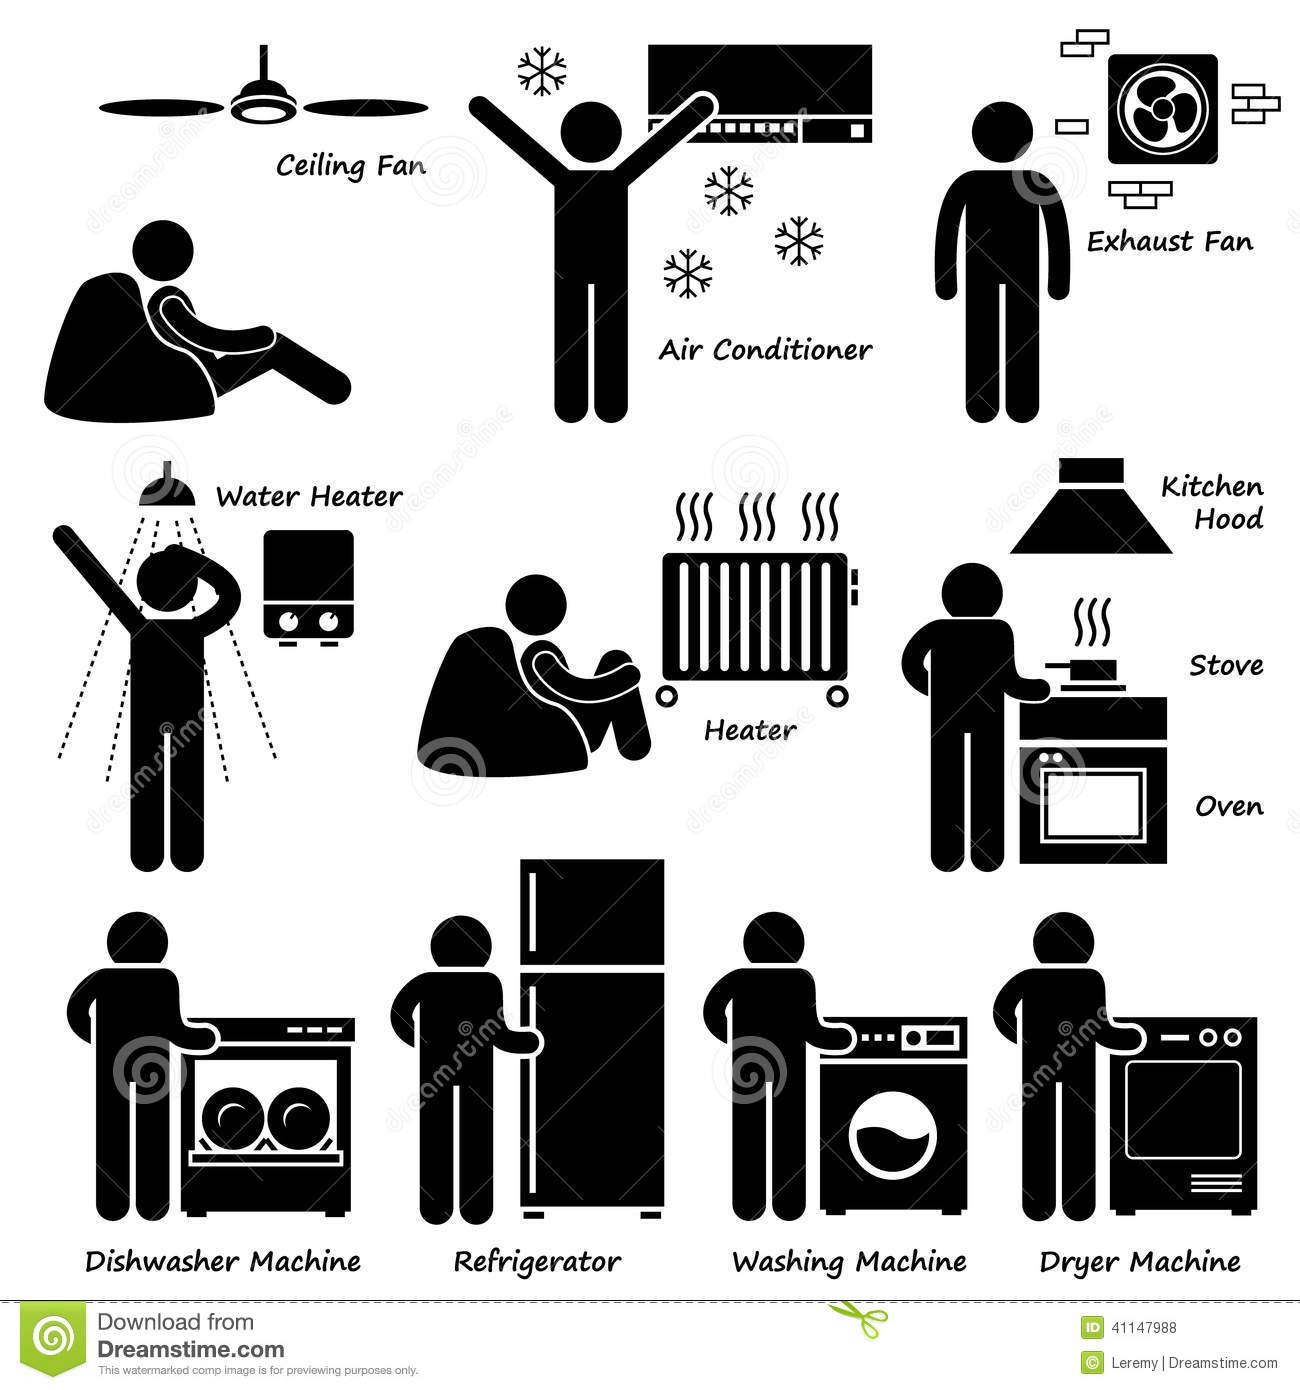 Watch additionally Fur Bean Bags likewise Alternating Current Symbol additionally Heating Air Conditioning Air Conditioning Unit Clipart additionally Floor Plan Symbols. on air conditioner clip art